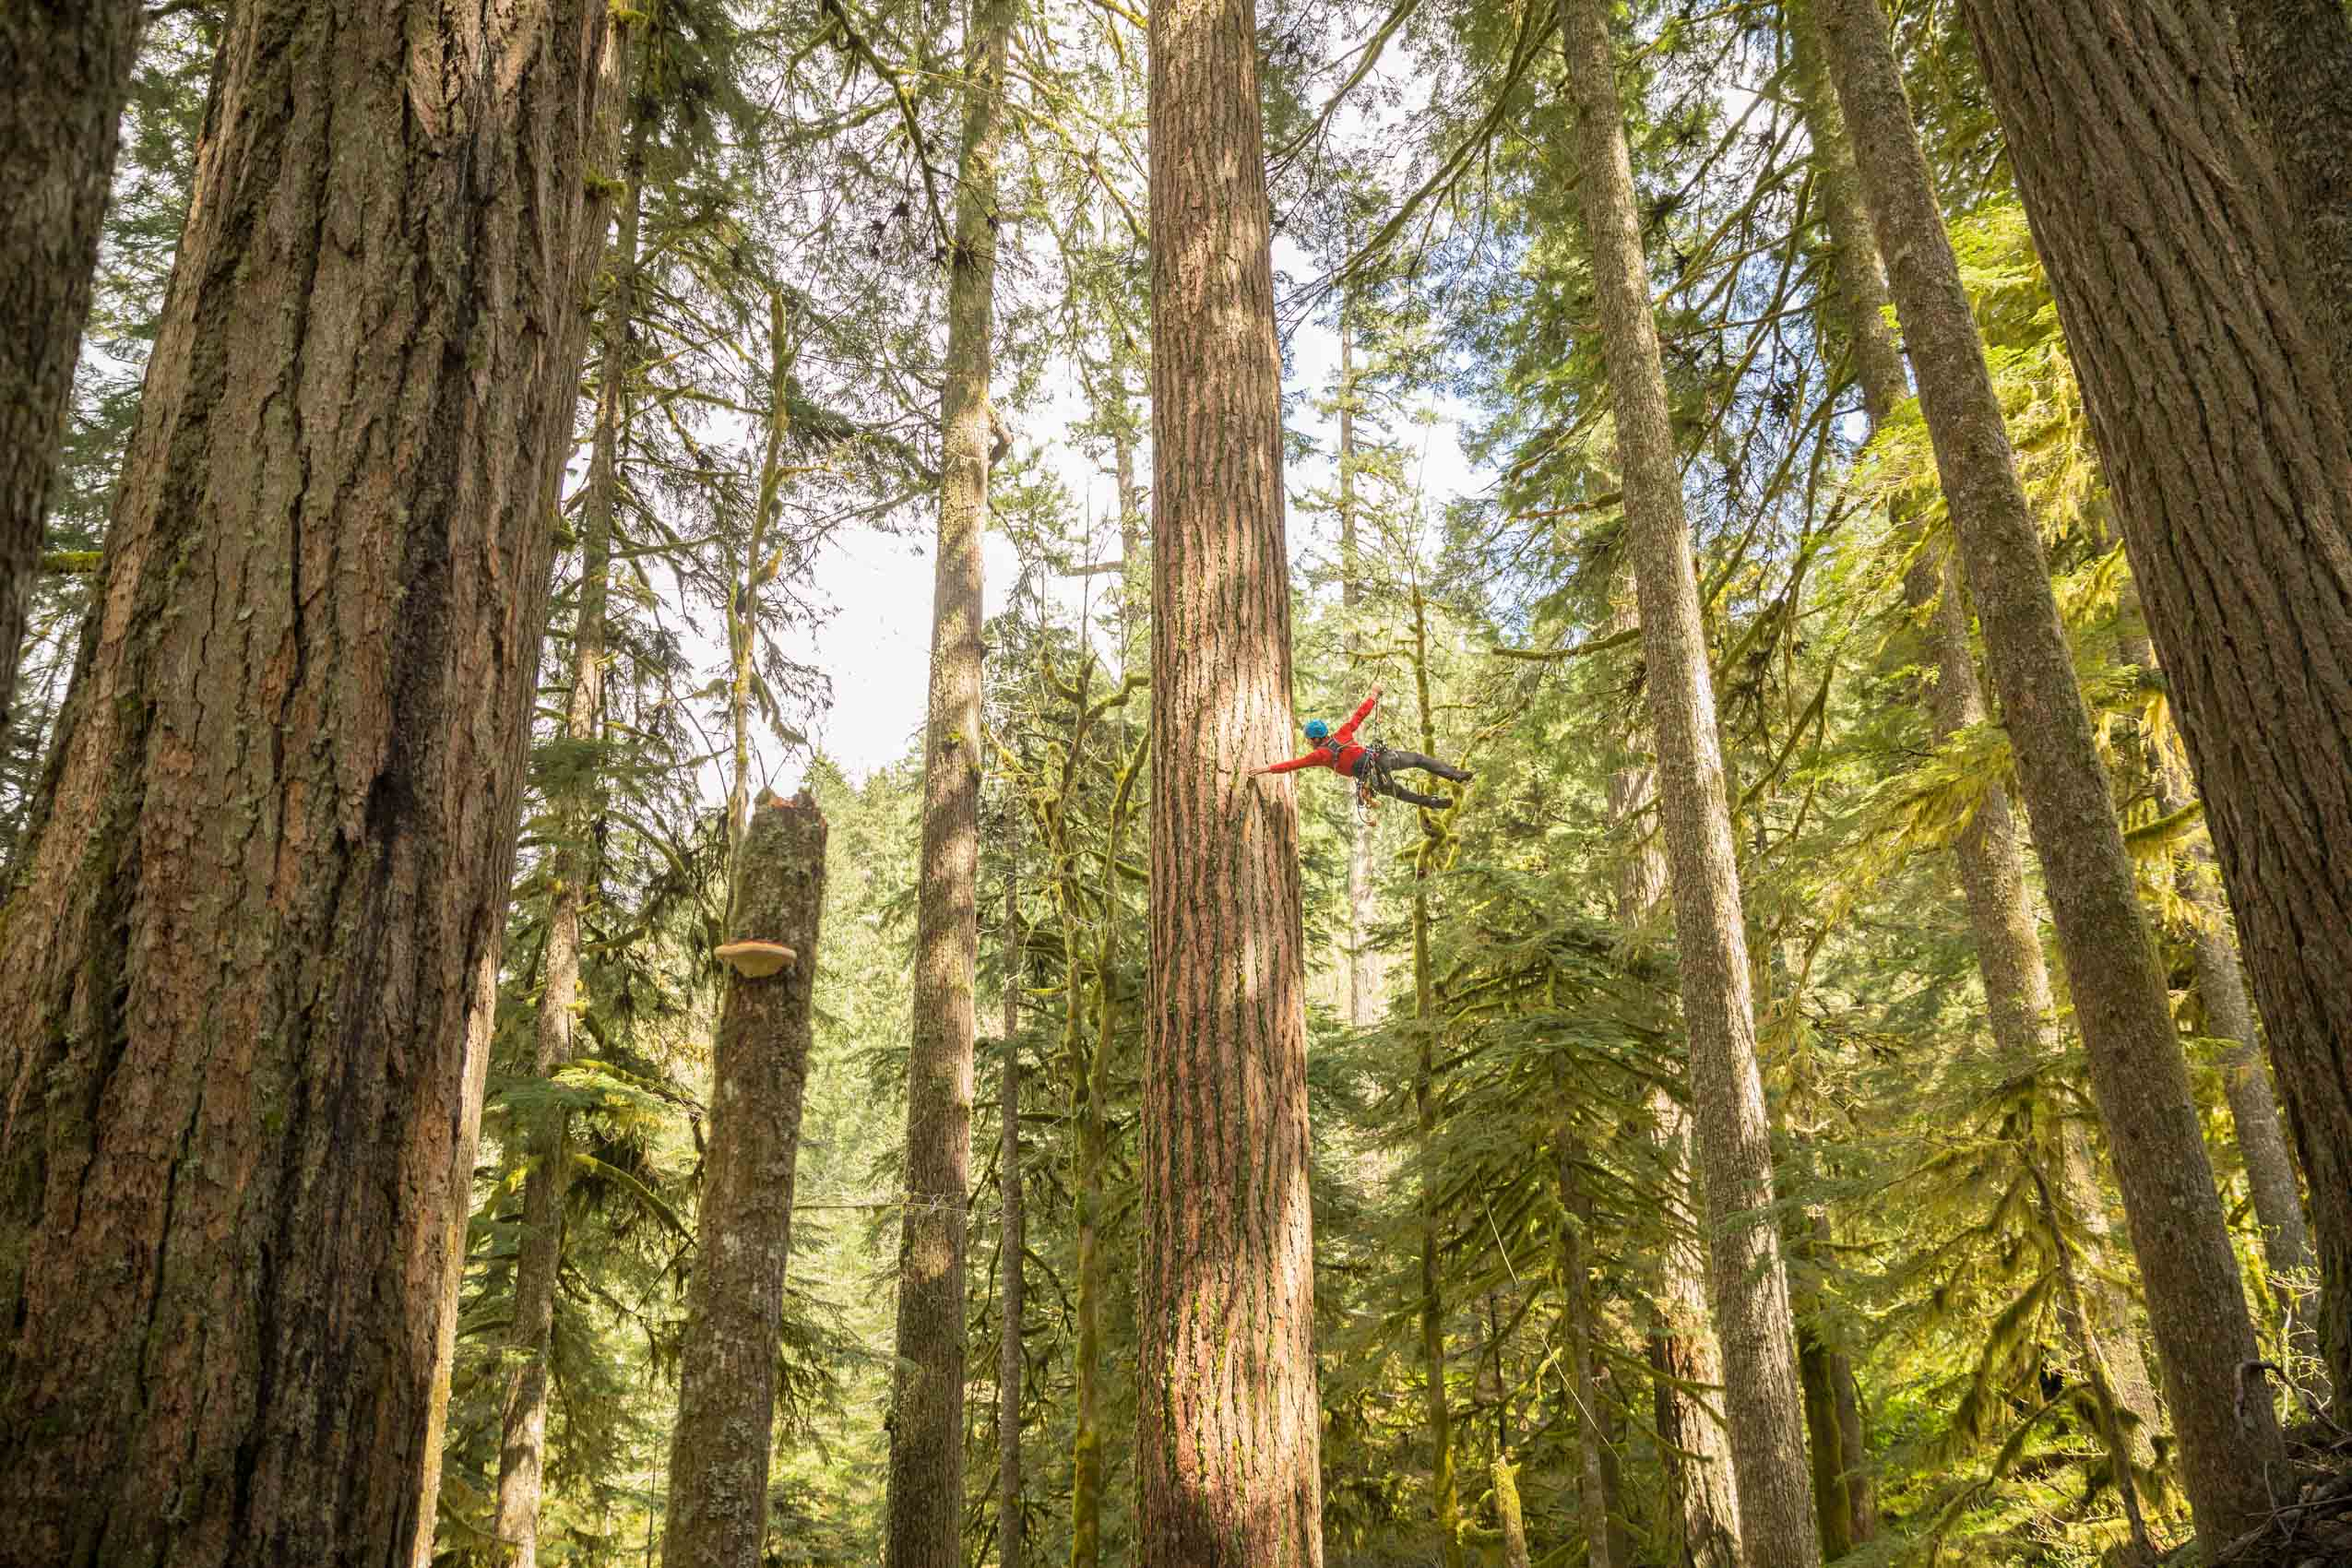 arbortist working in old growth on mt hood Rich Crowder